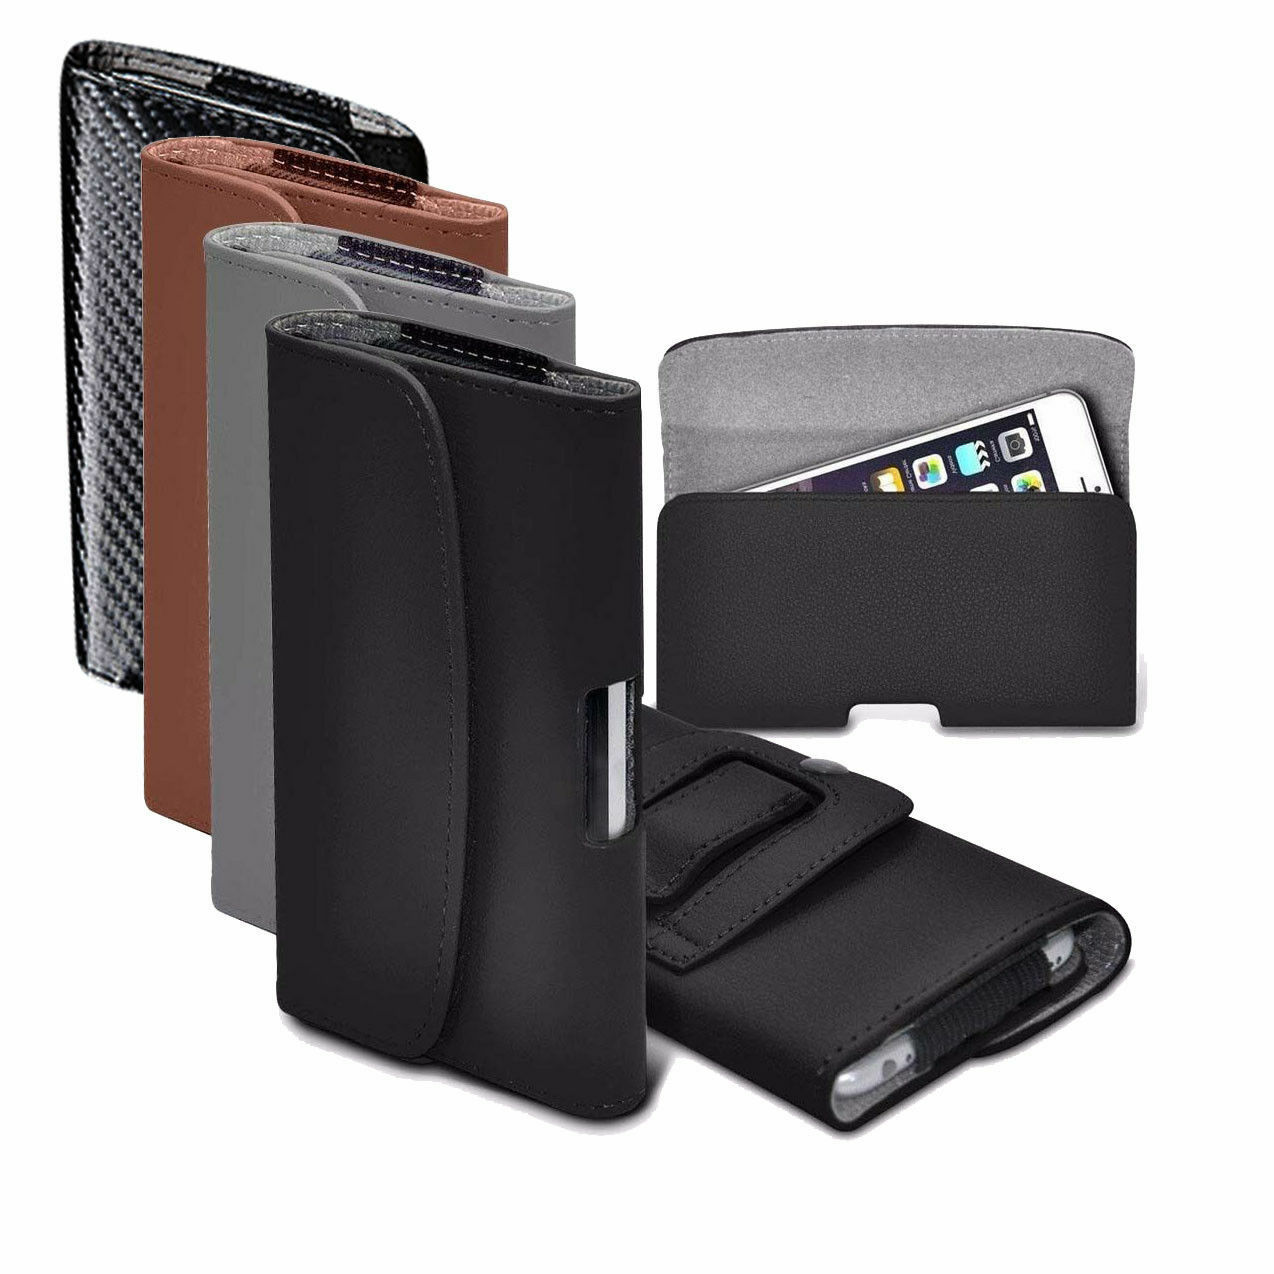 PU Faux Leather Horizontal Belt Holster Case Cover for Oukit